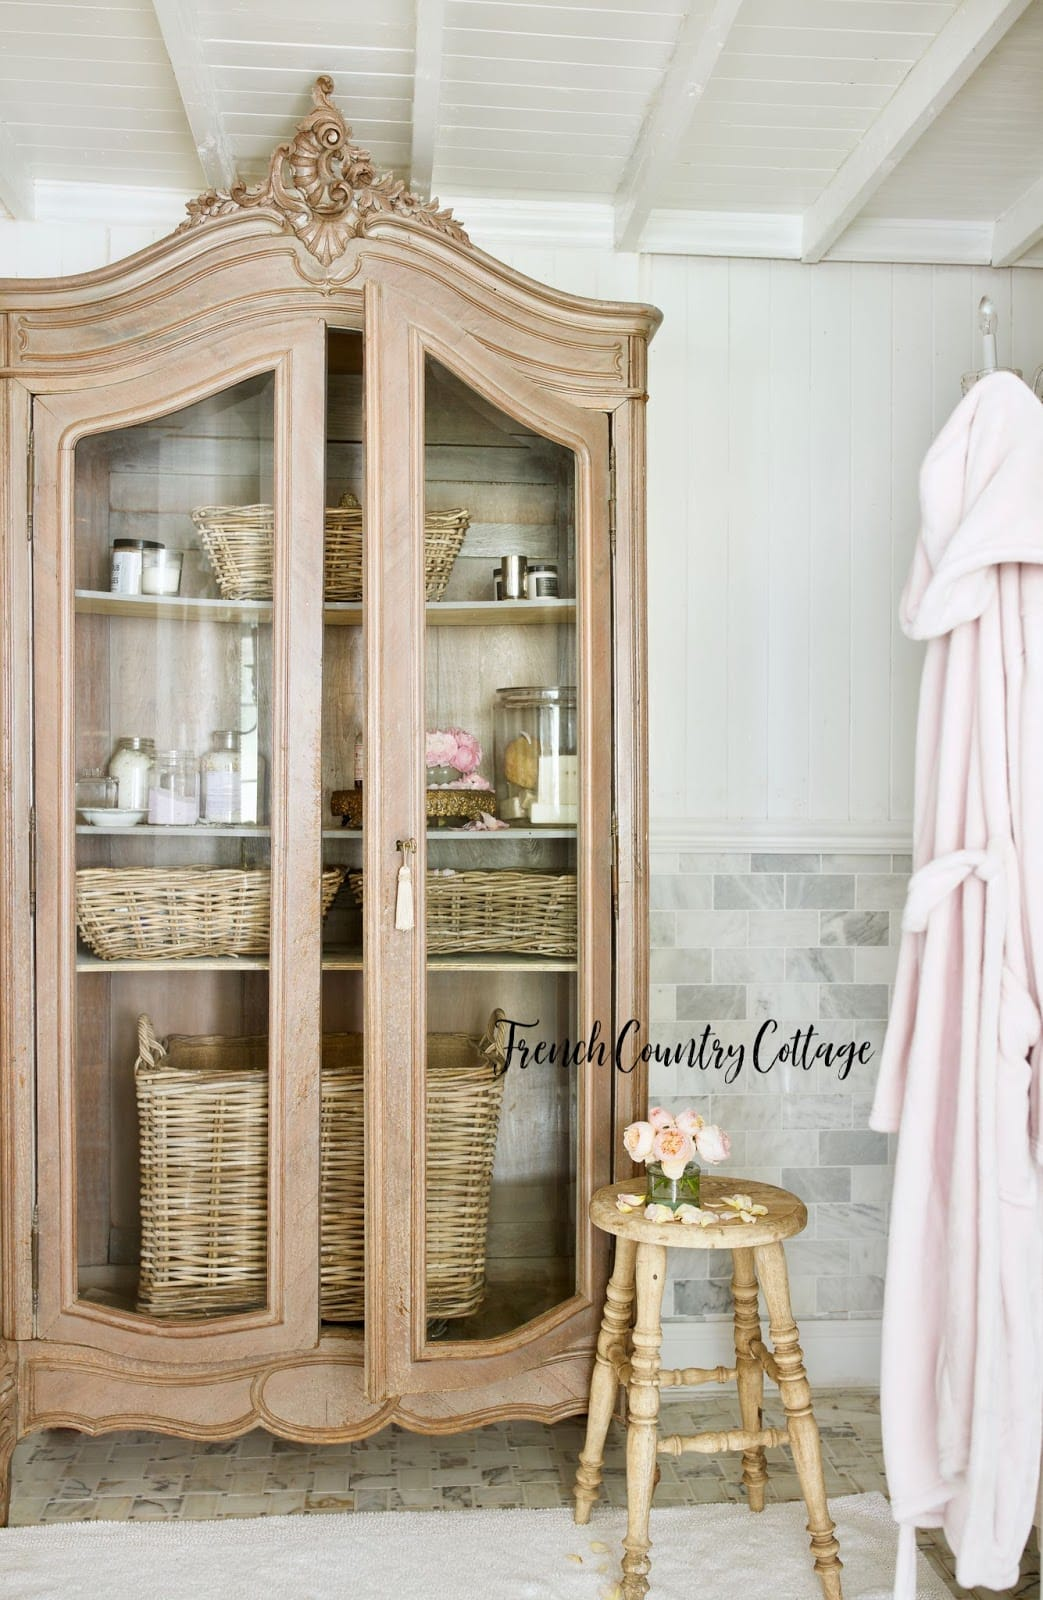 7 Ways To Add French Farmhouse Charm To Your Bathroom French Country Cottage